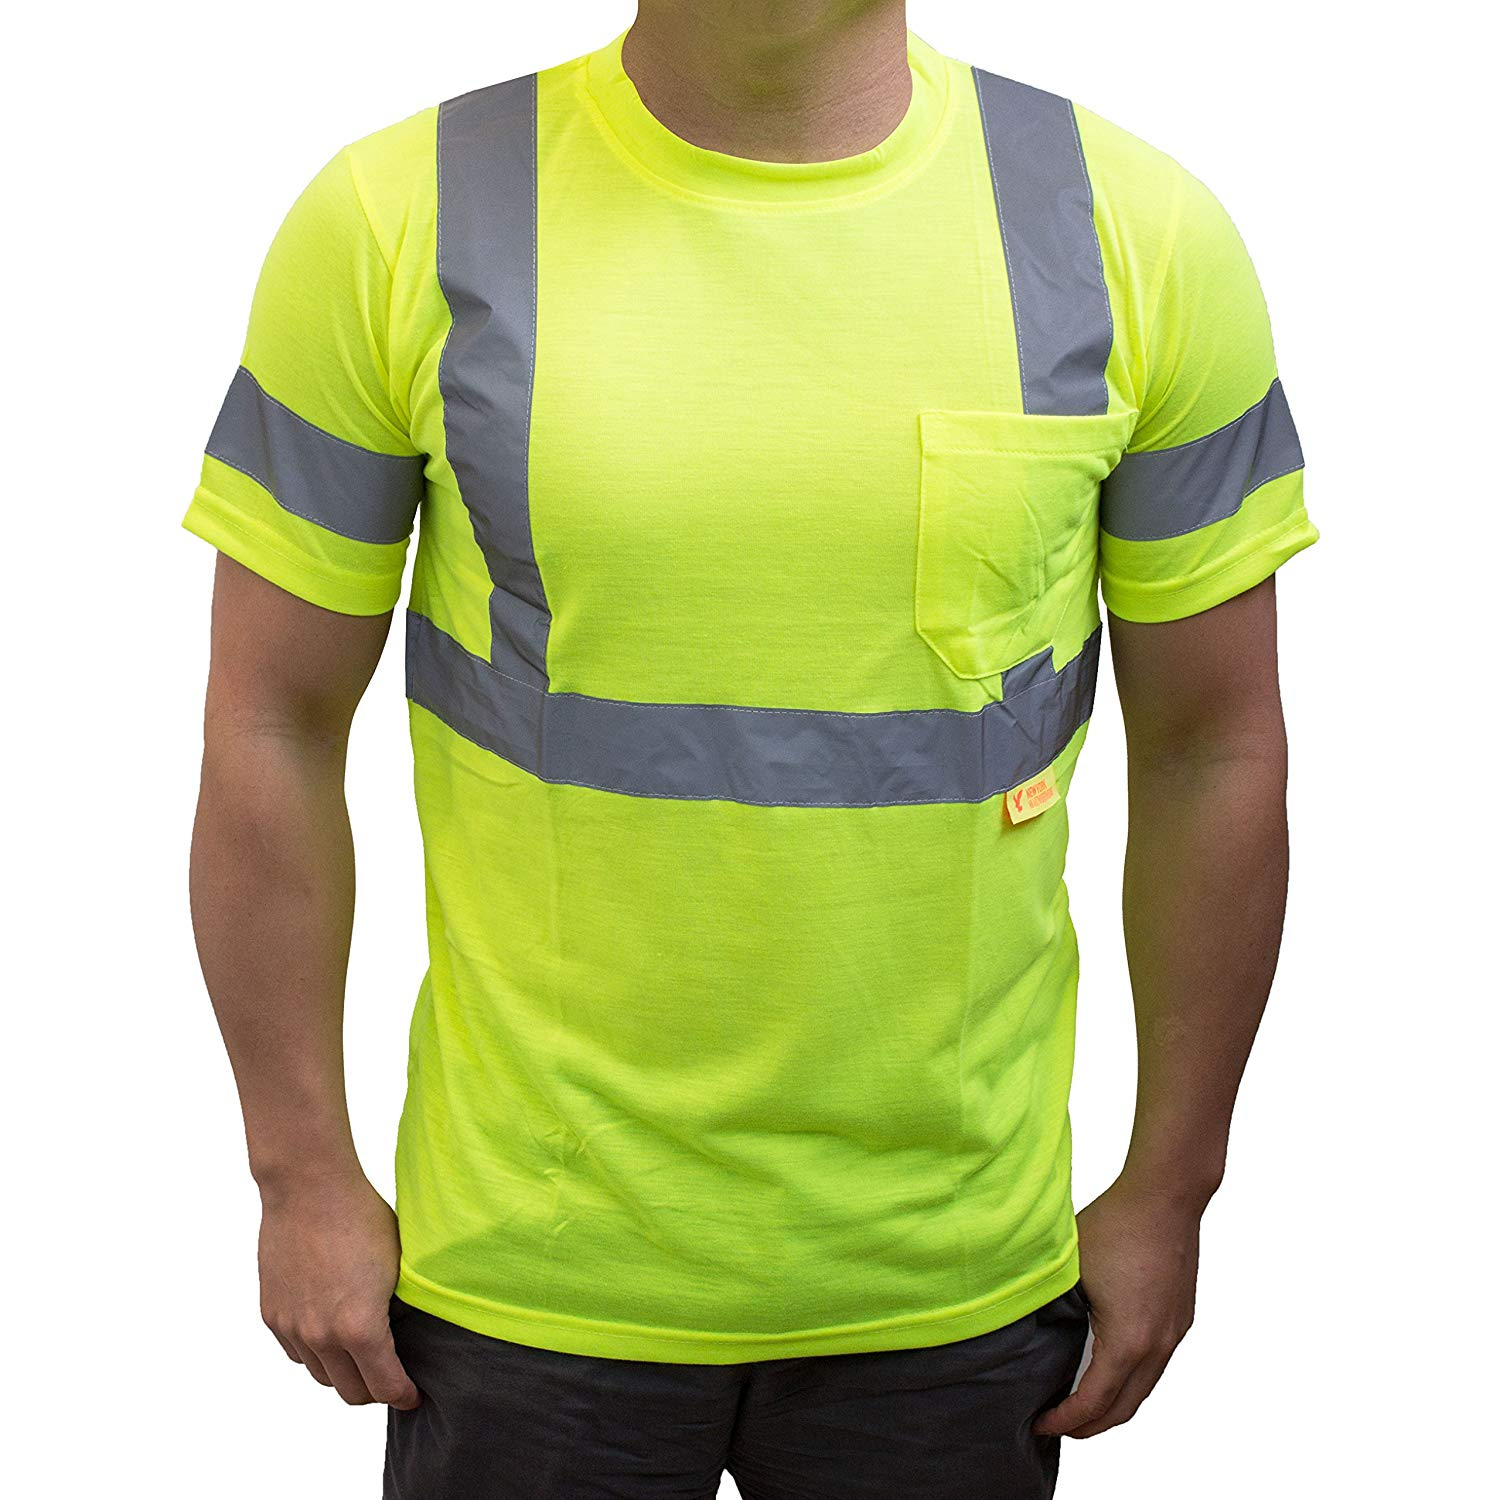 Cheap Hi Vis Workwear Find Hi Vis Workwear Deals On Line At Alibaba Com